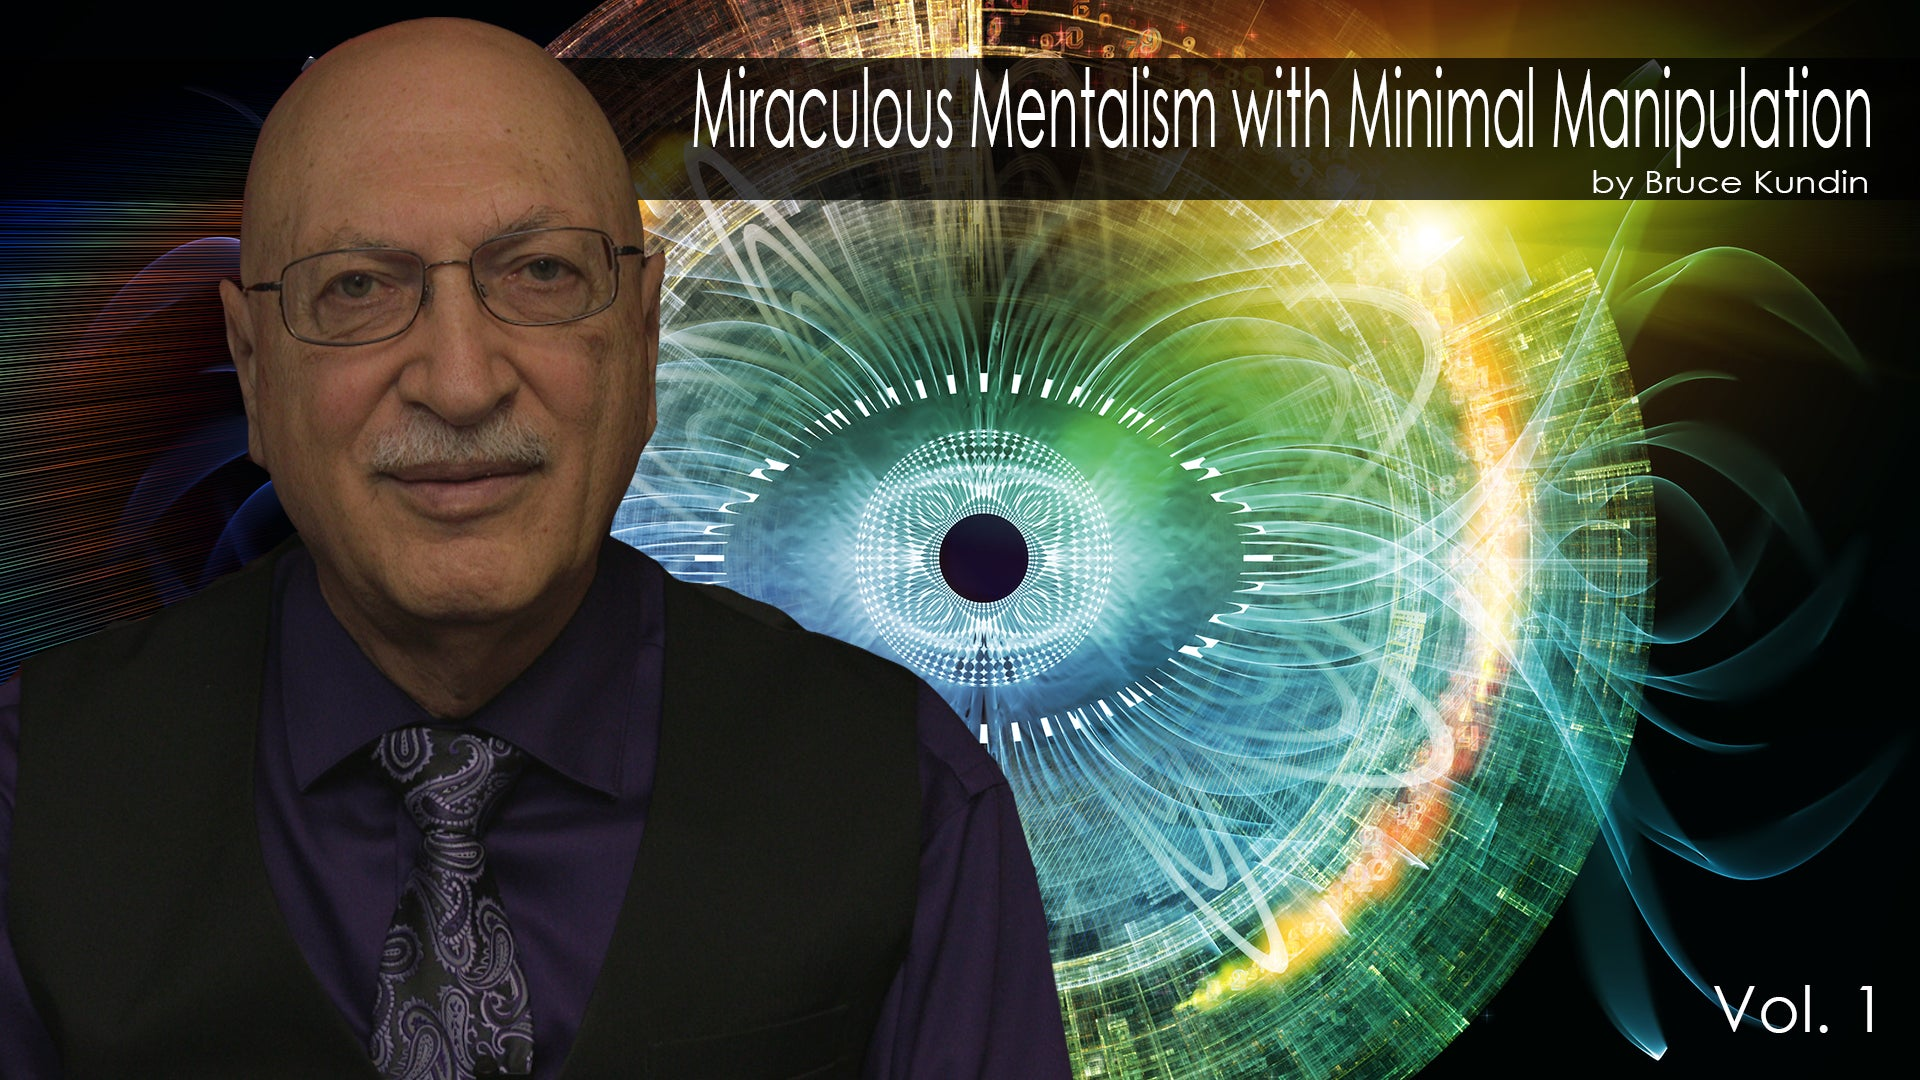 Miraculous Mentalism with Minimal Manipulation